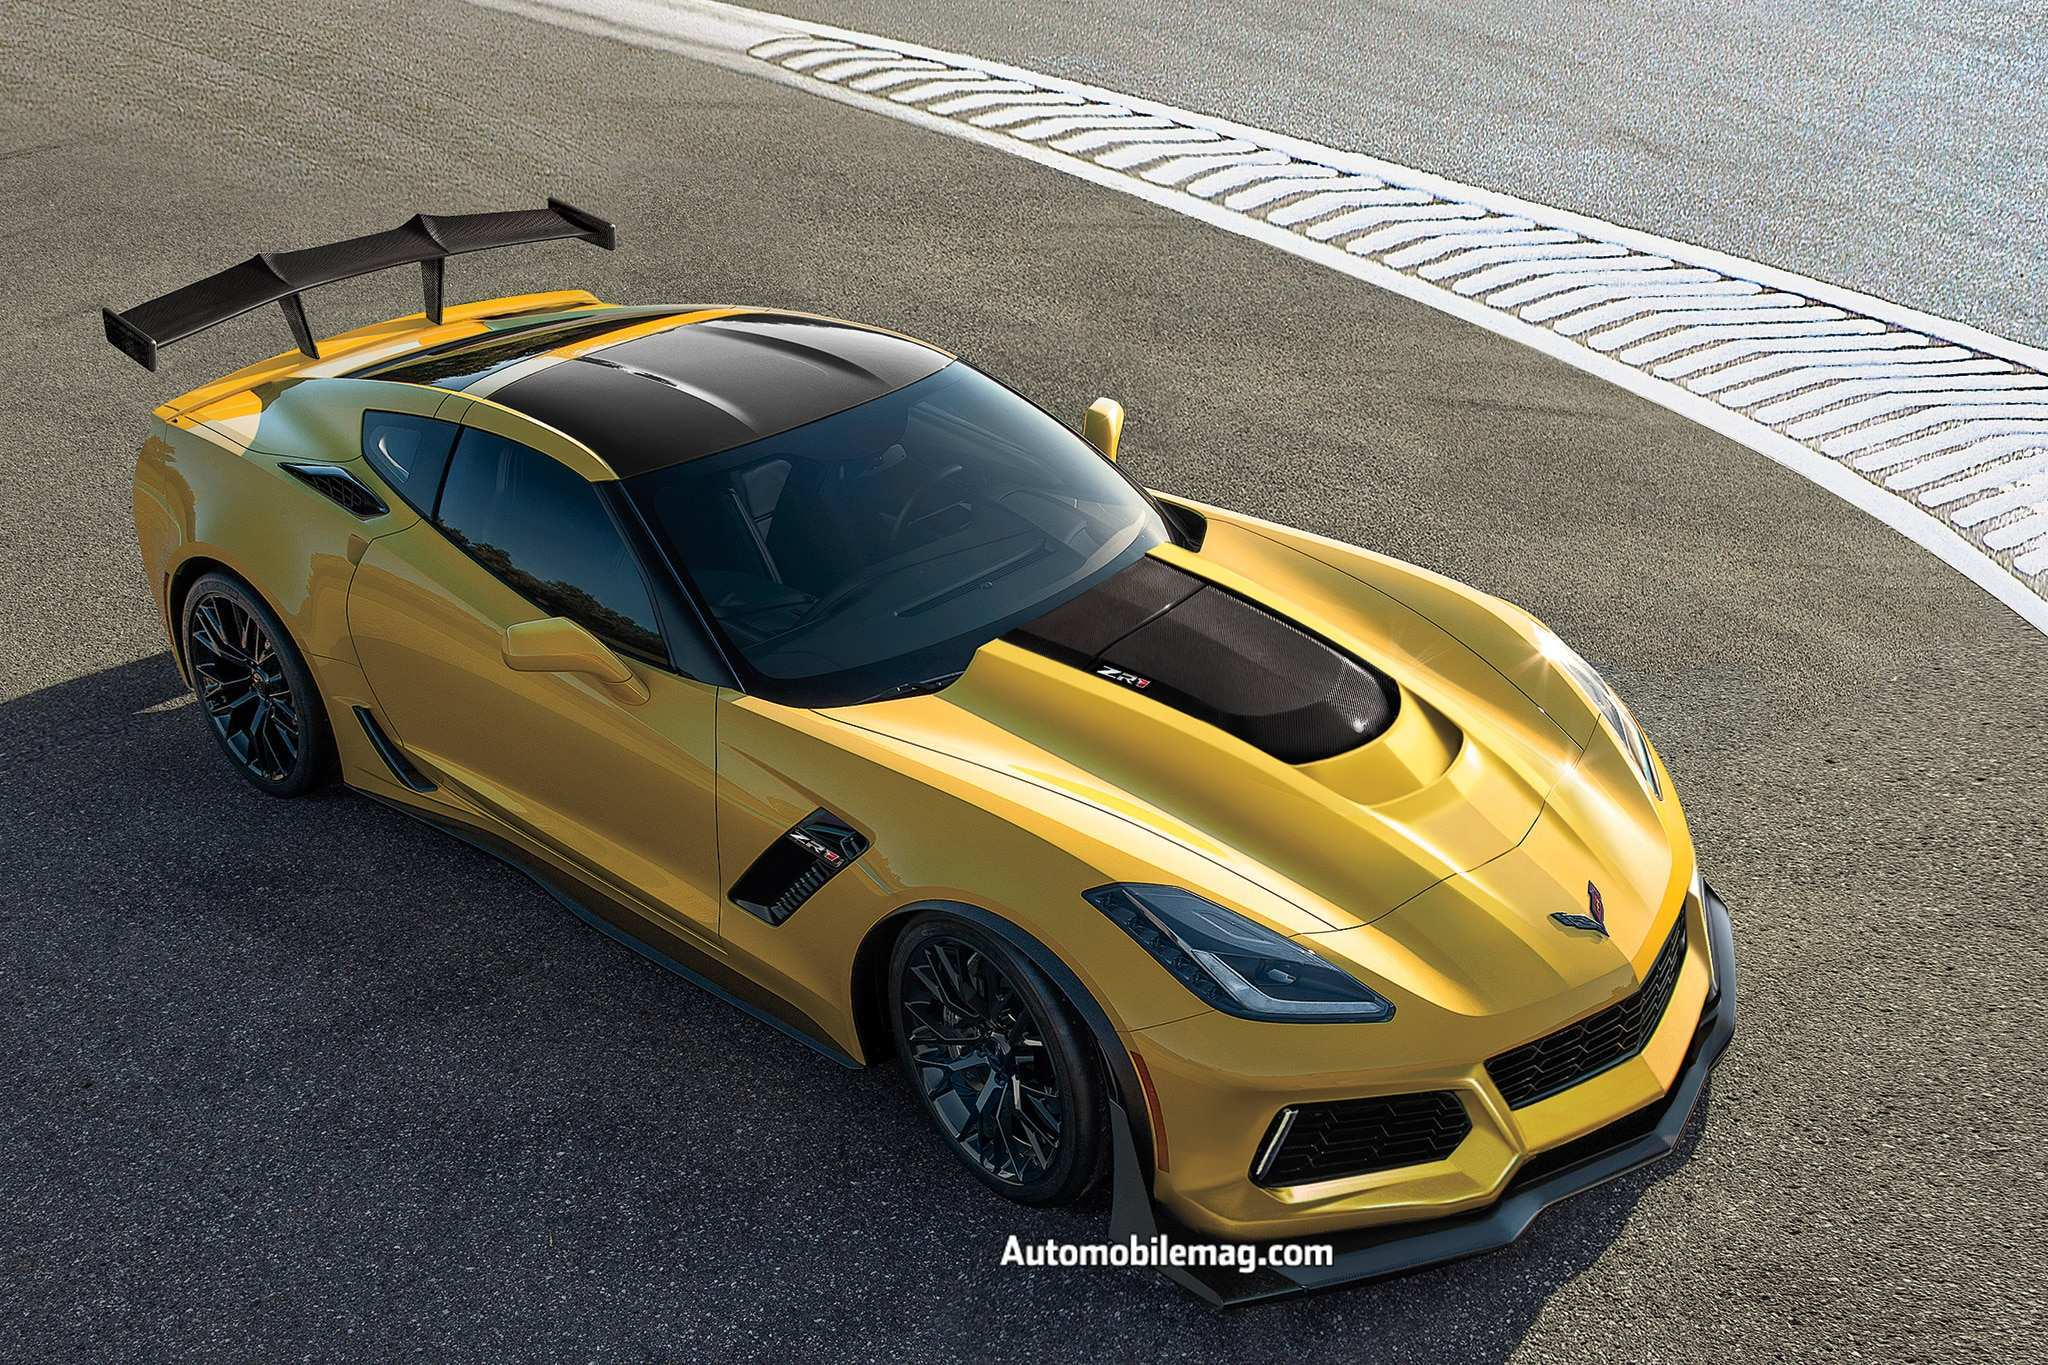 45 New 2019 Chevrolet Zr1 Price New Concept with 2019 Chevrolet Zr1 Price